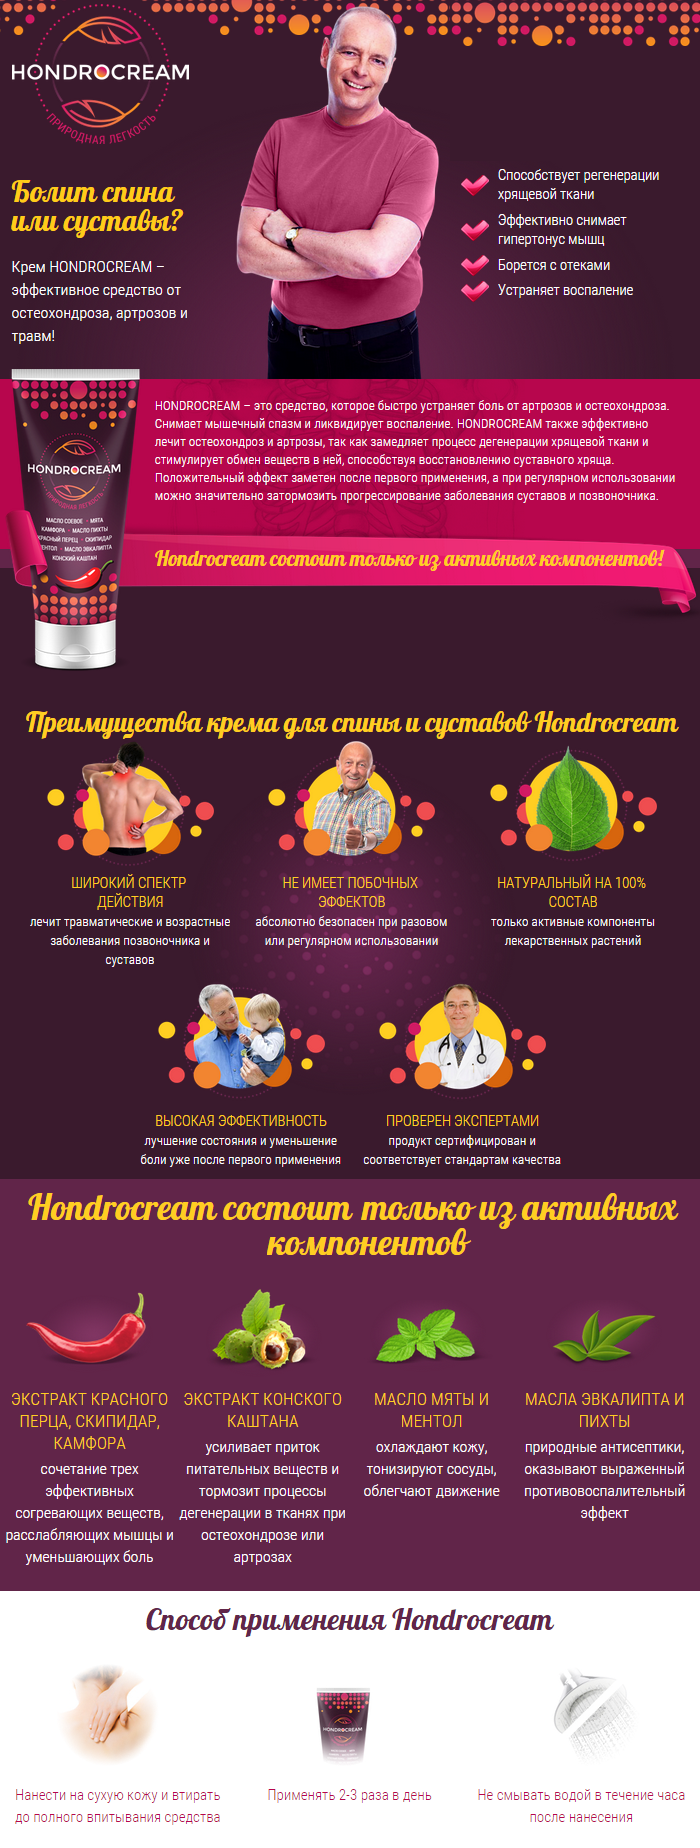 Крем Hondrocream от остеохондроза, артрозов и травм в Коломне